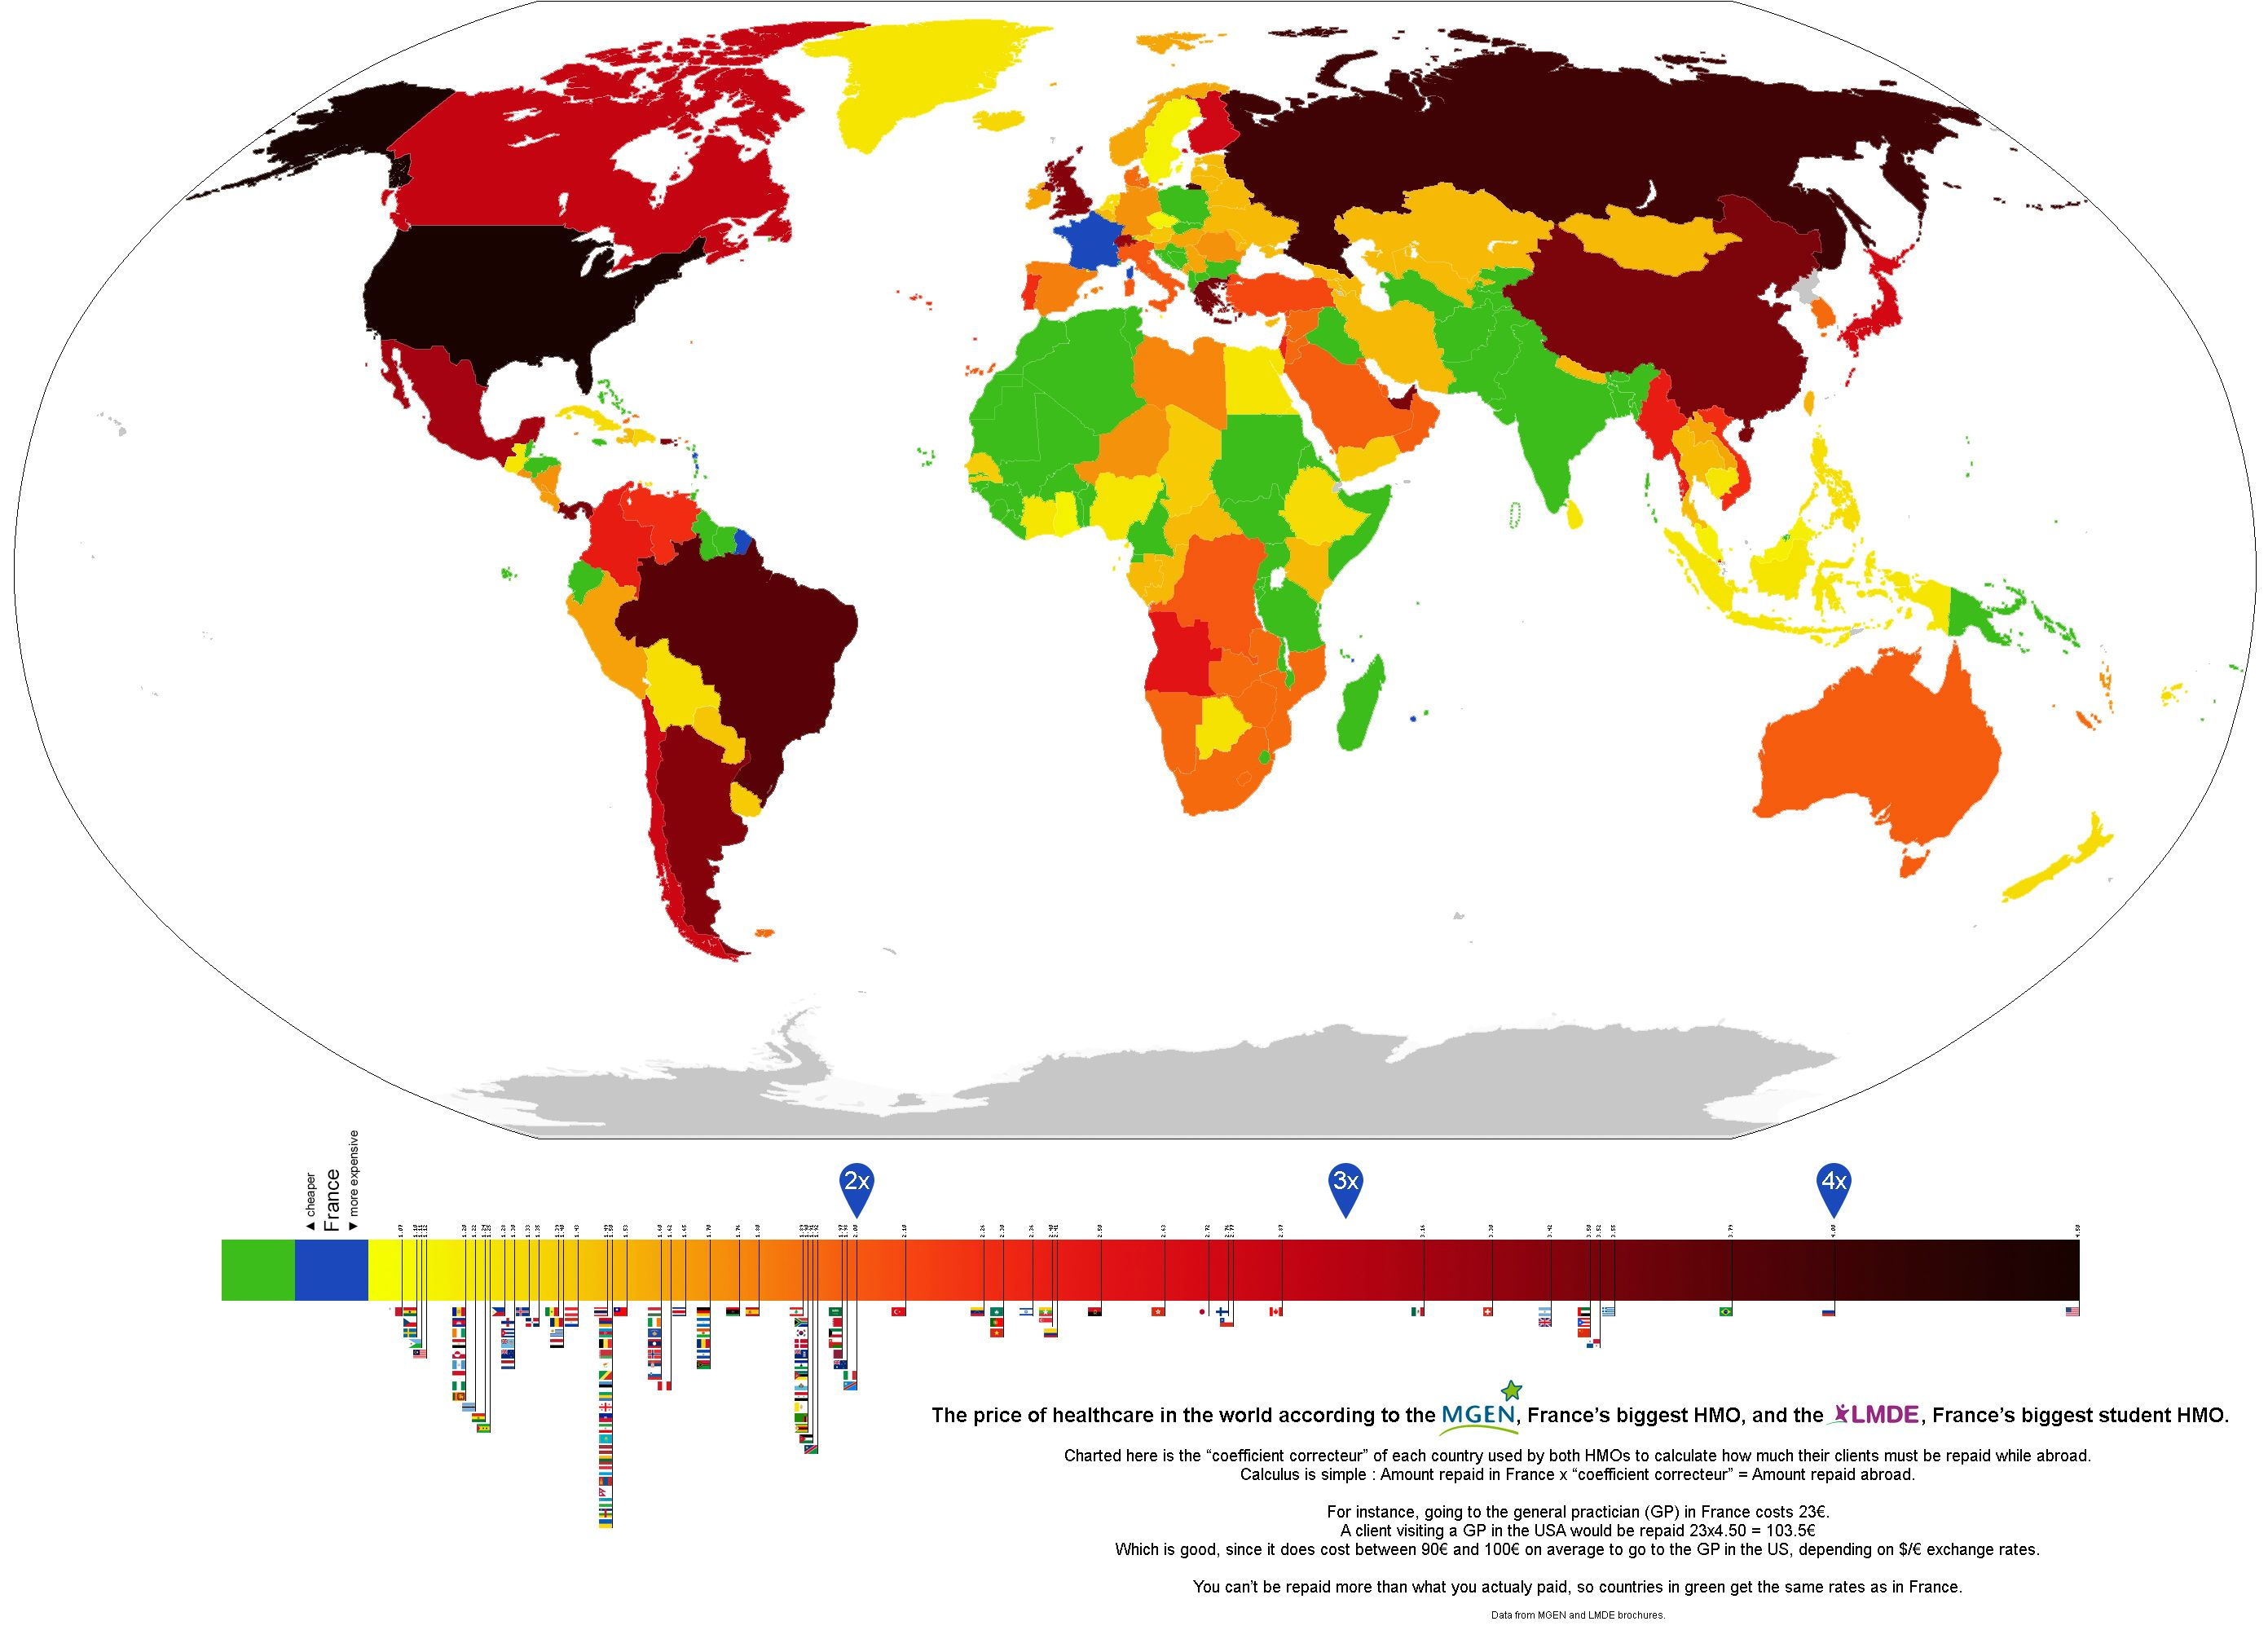 This Map Of Global Health Care Prices Shows Americans Are Getting Ripped Off